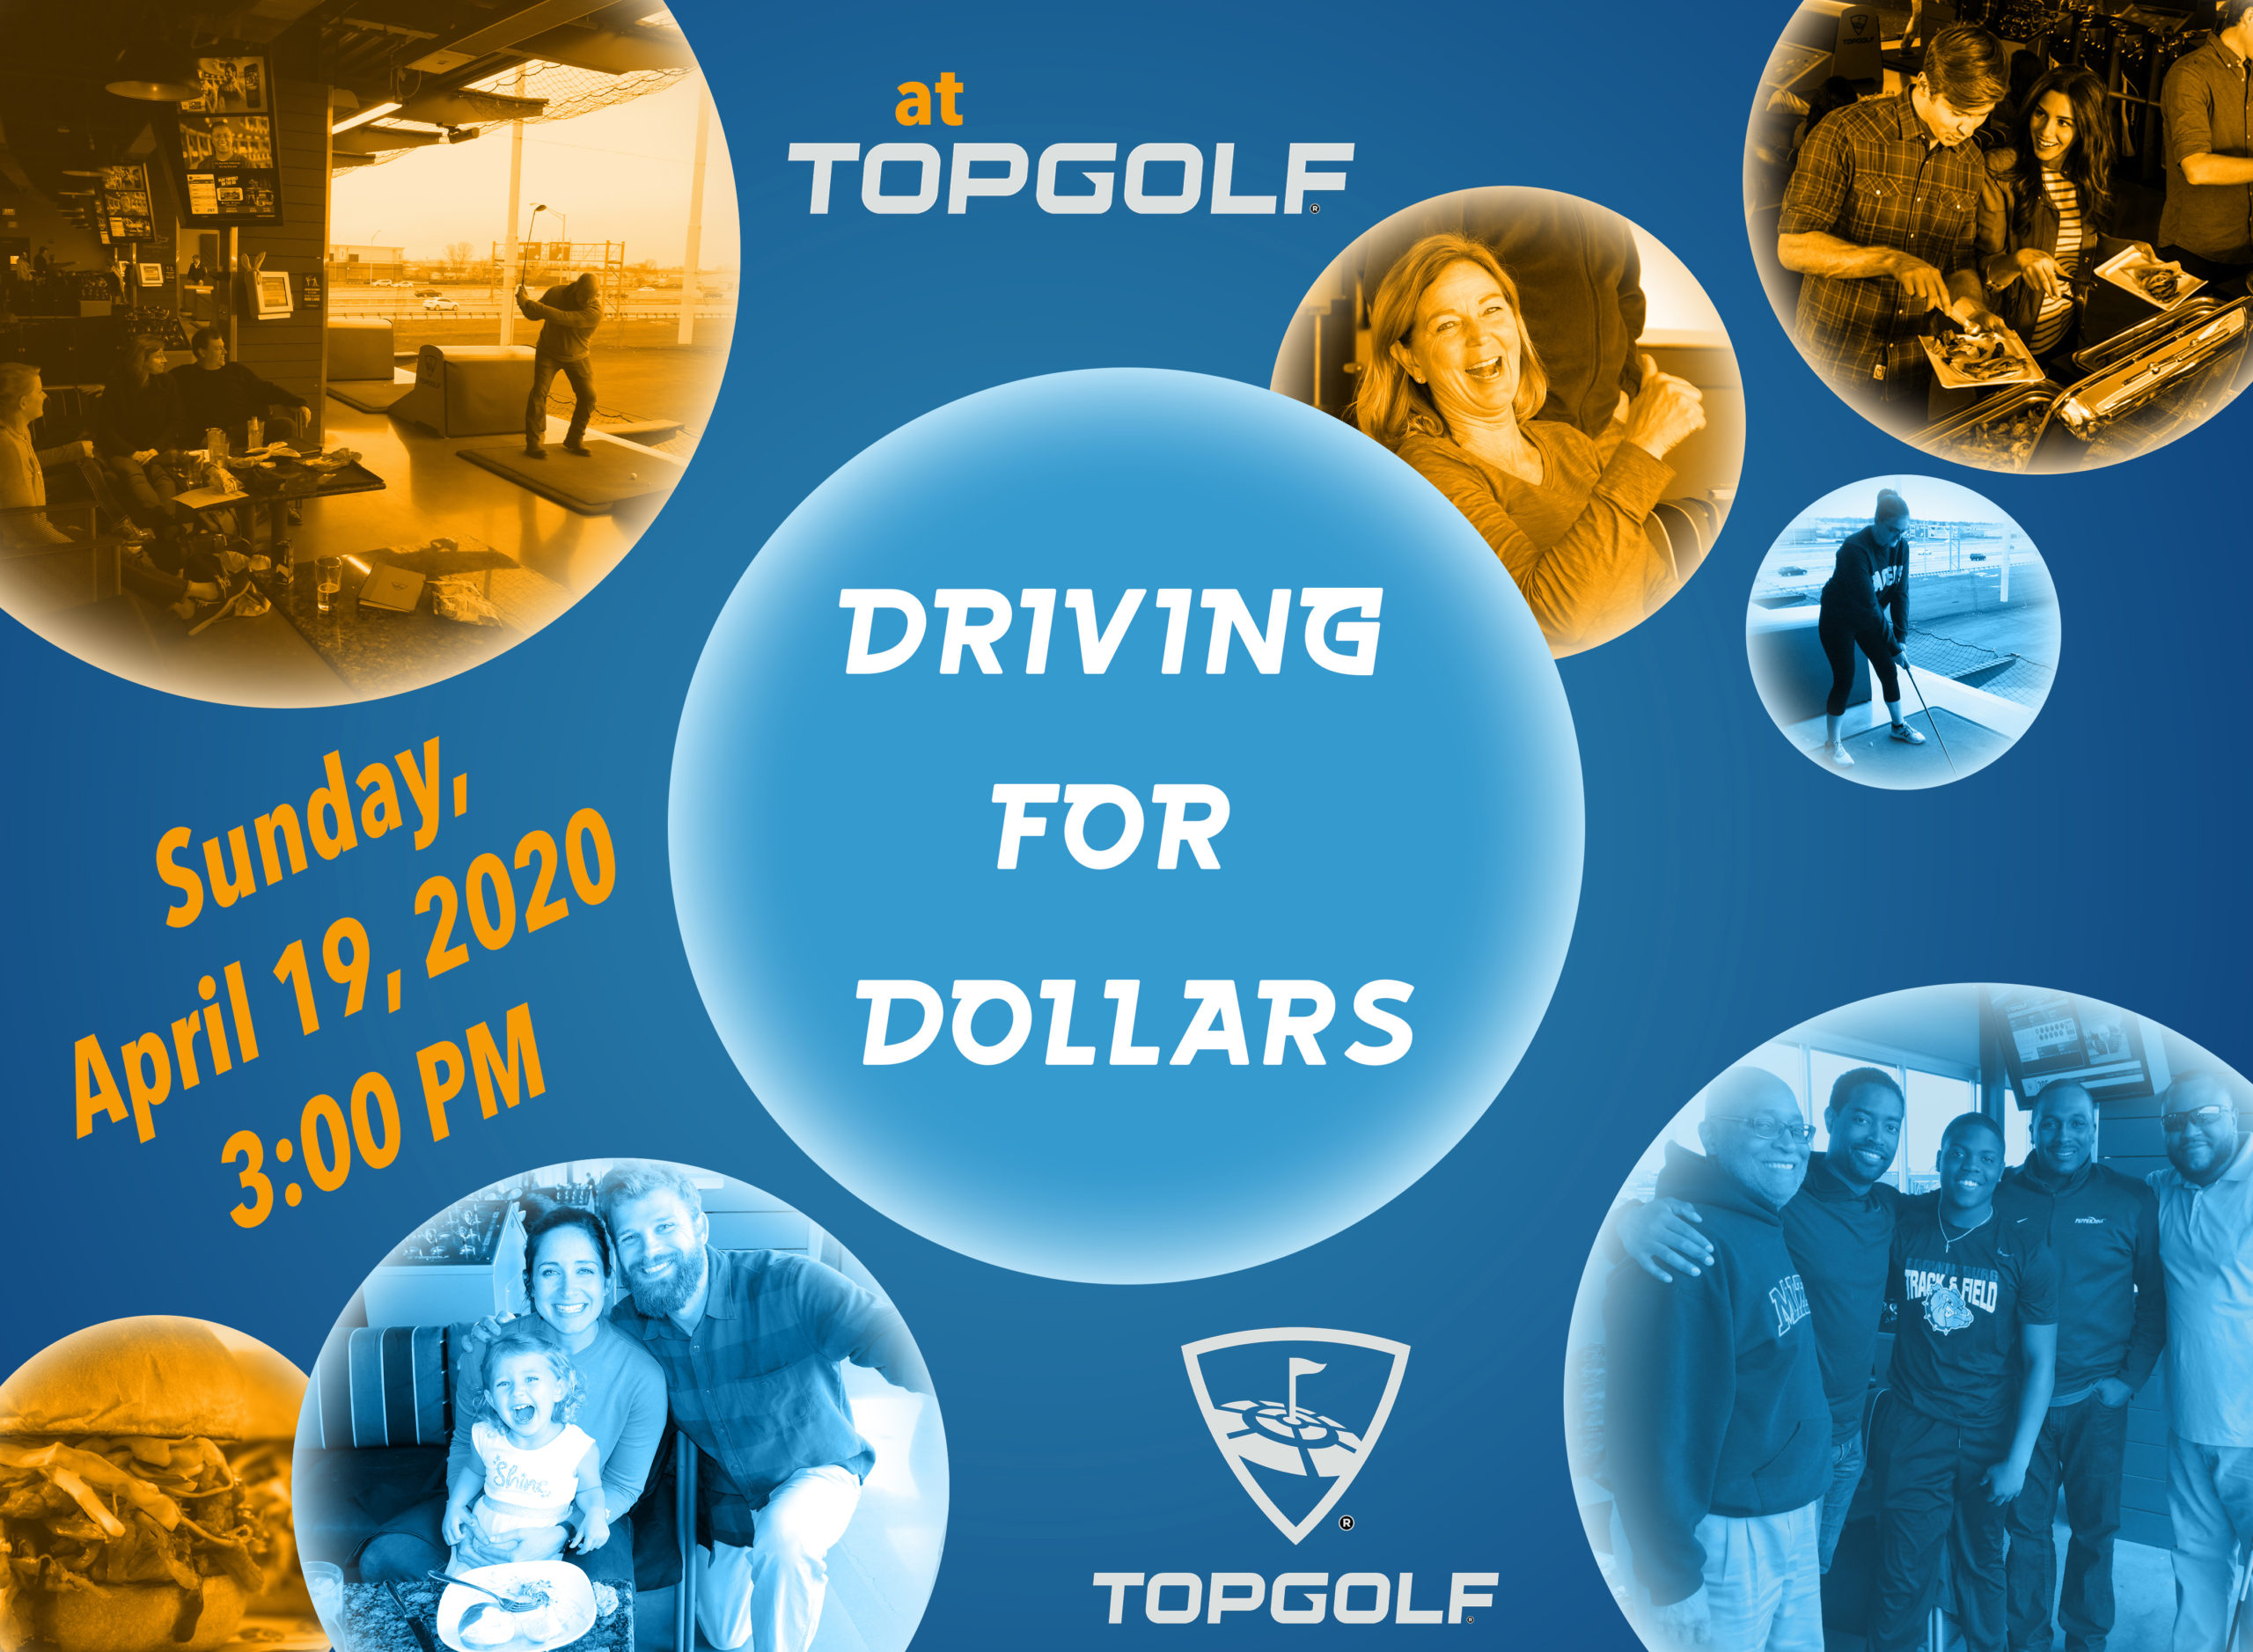 Come to Driving for Dollars on April 19, 3 PM. !